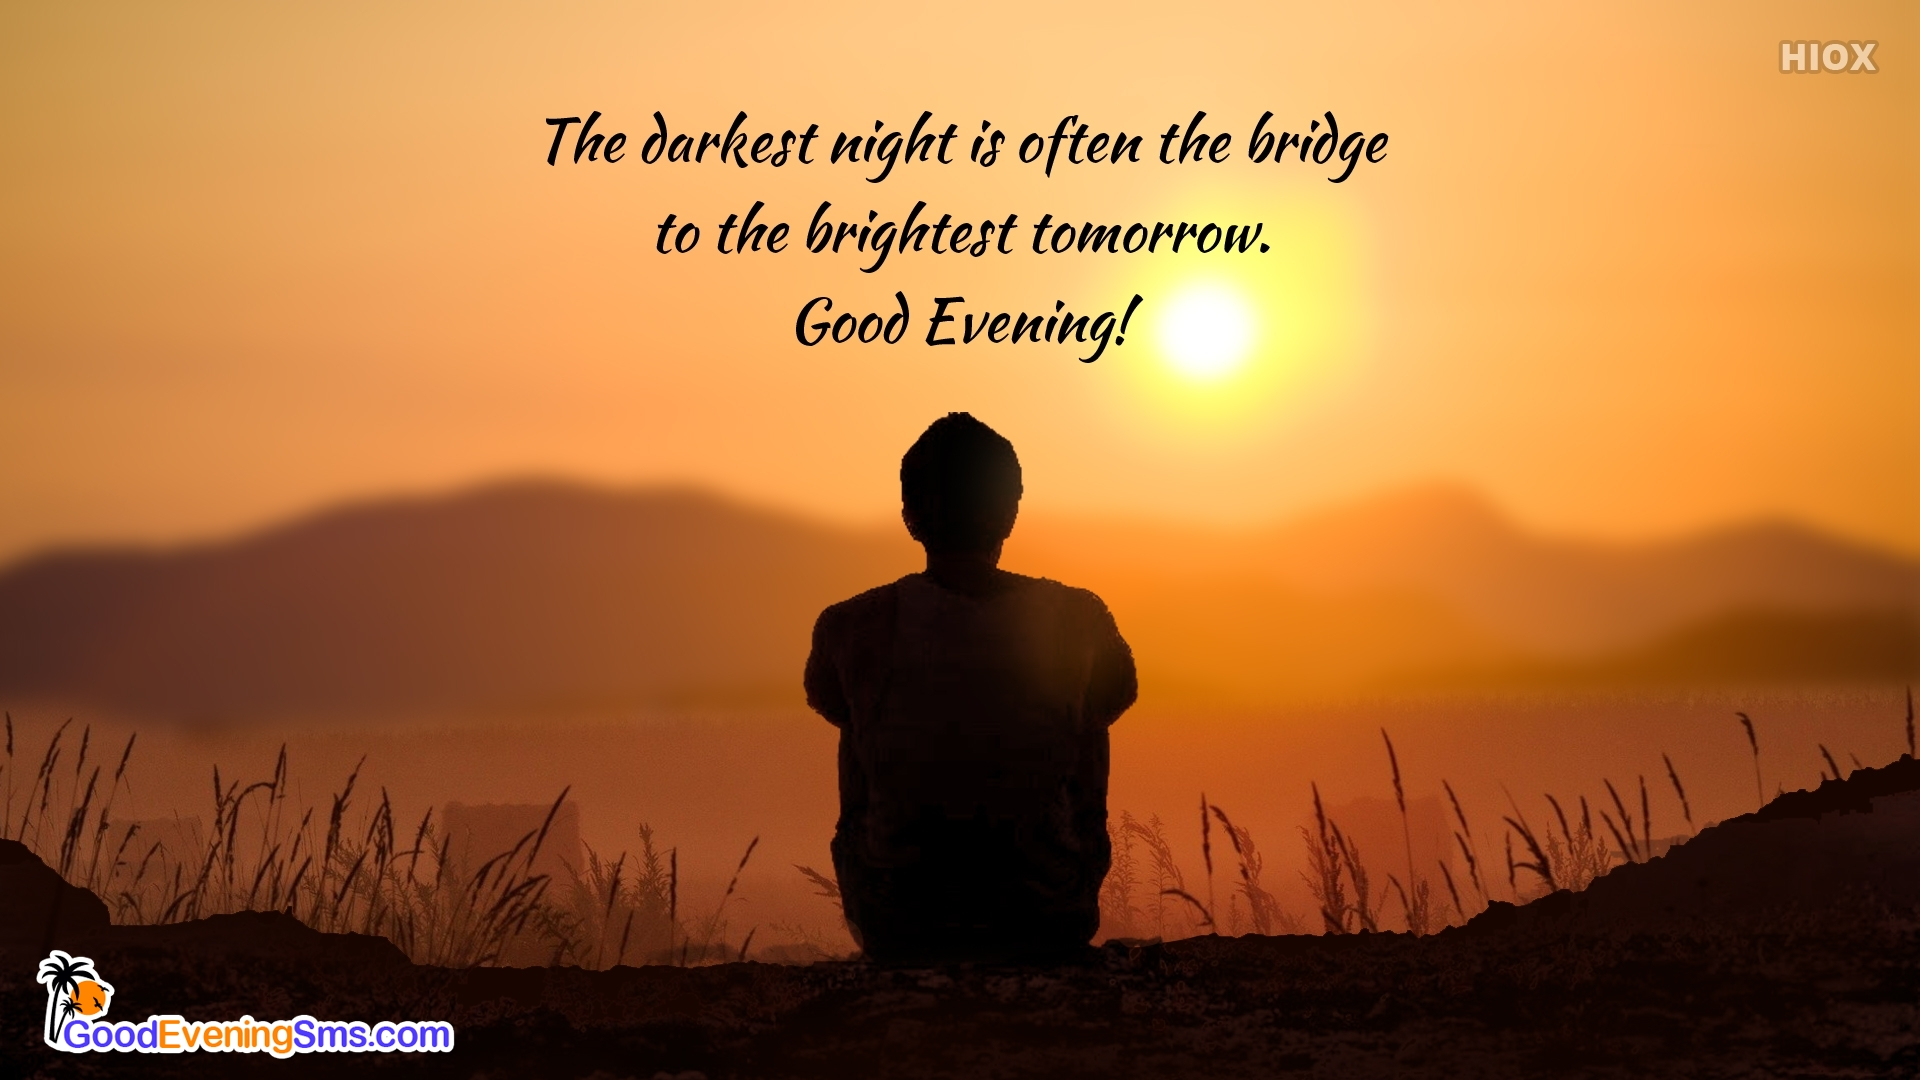 The Darkest Night Is Often The Bridge To The Brightest Tomorrow. Good Evening!